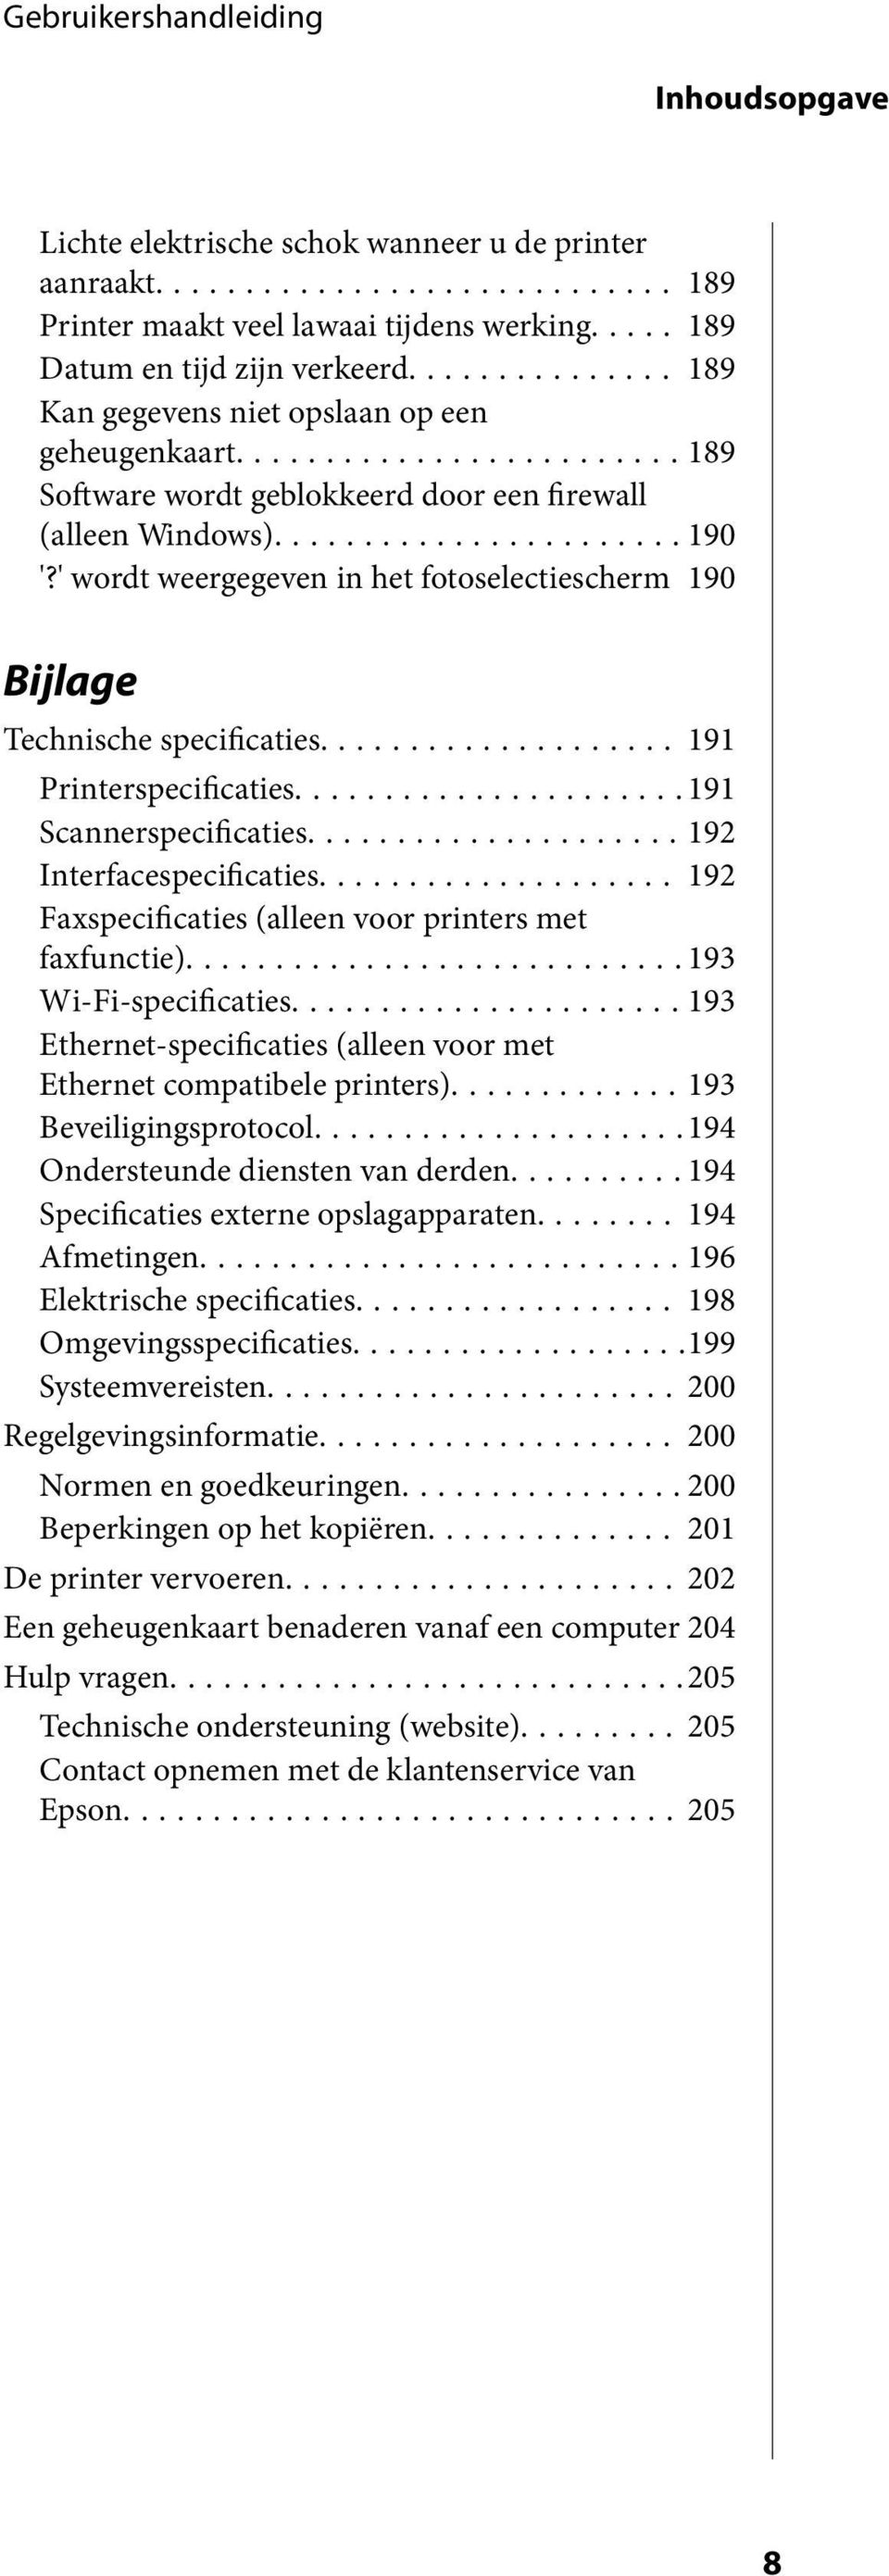 ' wordt weergegeven in het fotoselectiescherm 190 Bijlage Technische specificaties... 191 Printerspecificaties...191 Scannerspecificaties...192 Interfacespecificaties.